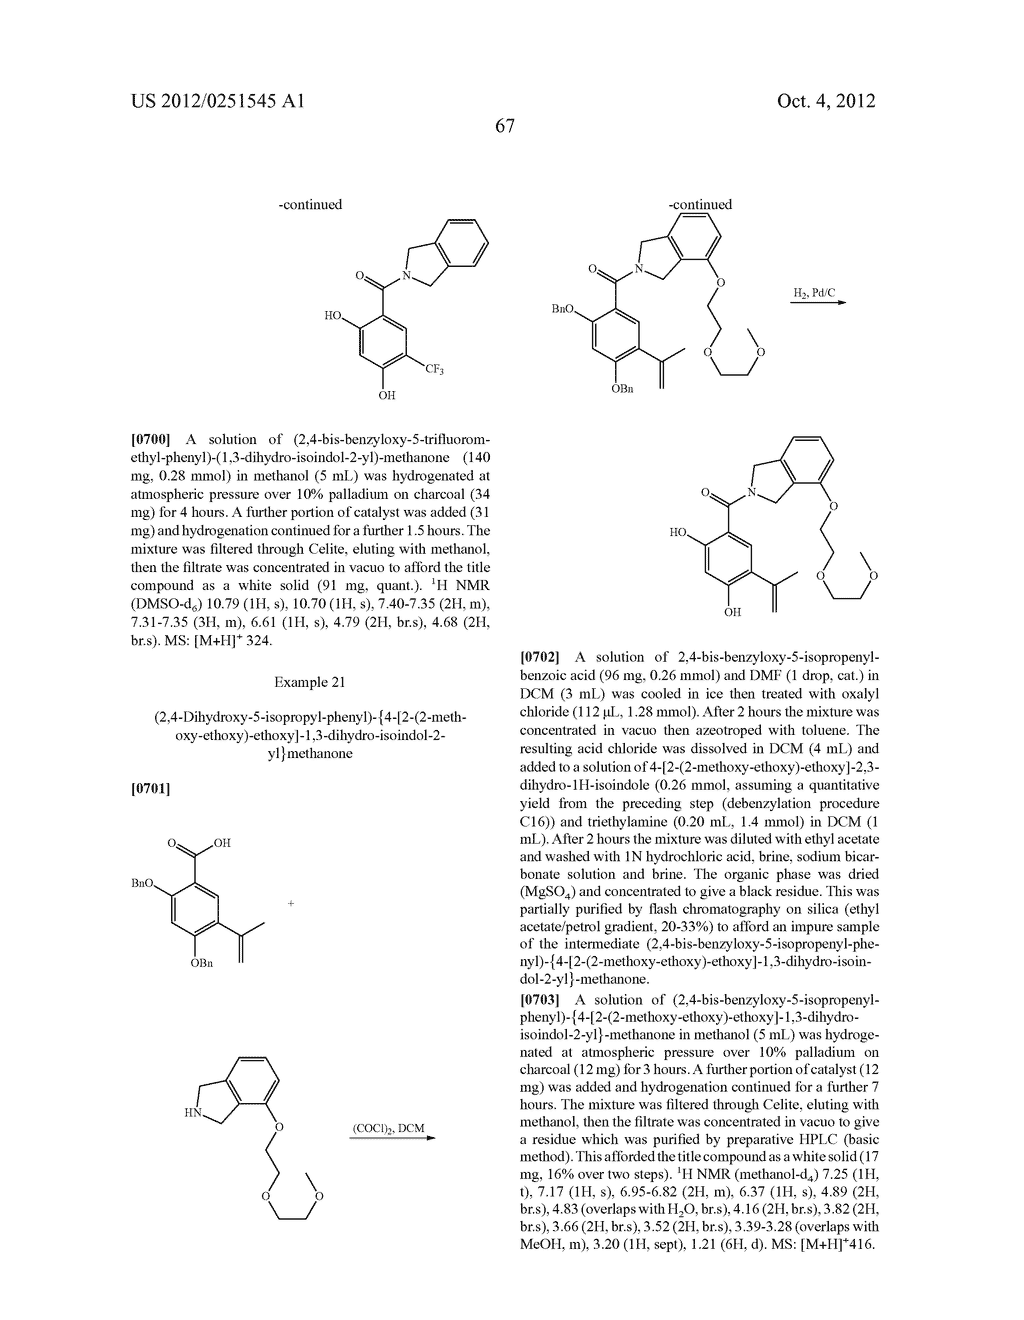 Therapeutic Combinations Of Hydroxybenzamide Derivatives As Inhibitors Of     HSP90 - diagram, schematic, and image 68